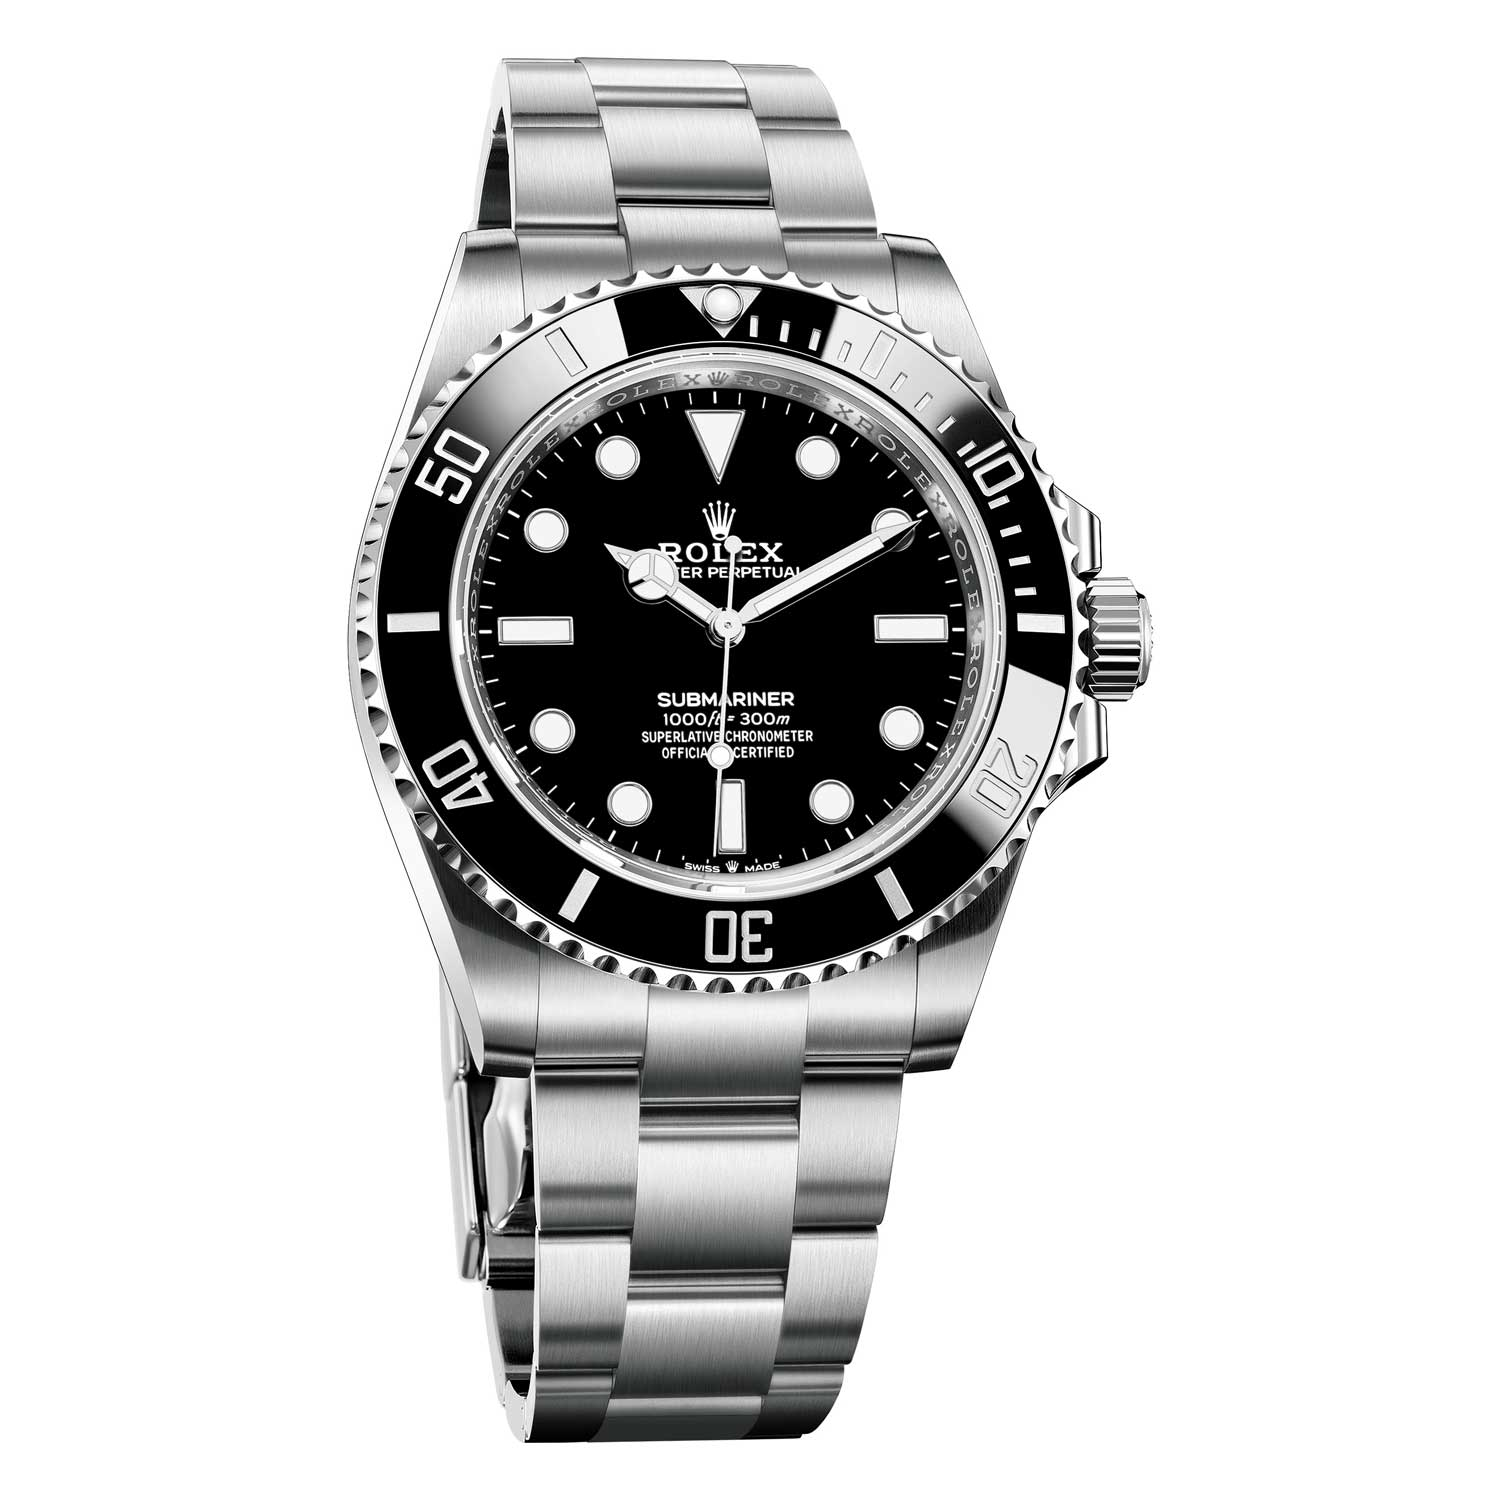 The 2020 Oyster Perpetual Submariner in Oystersteel ref. 124060